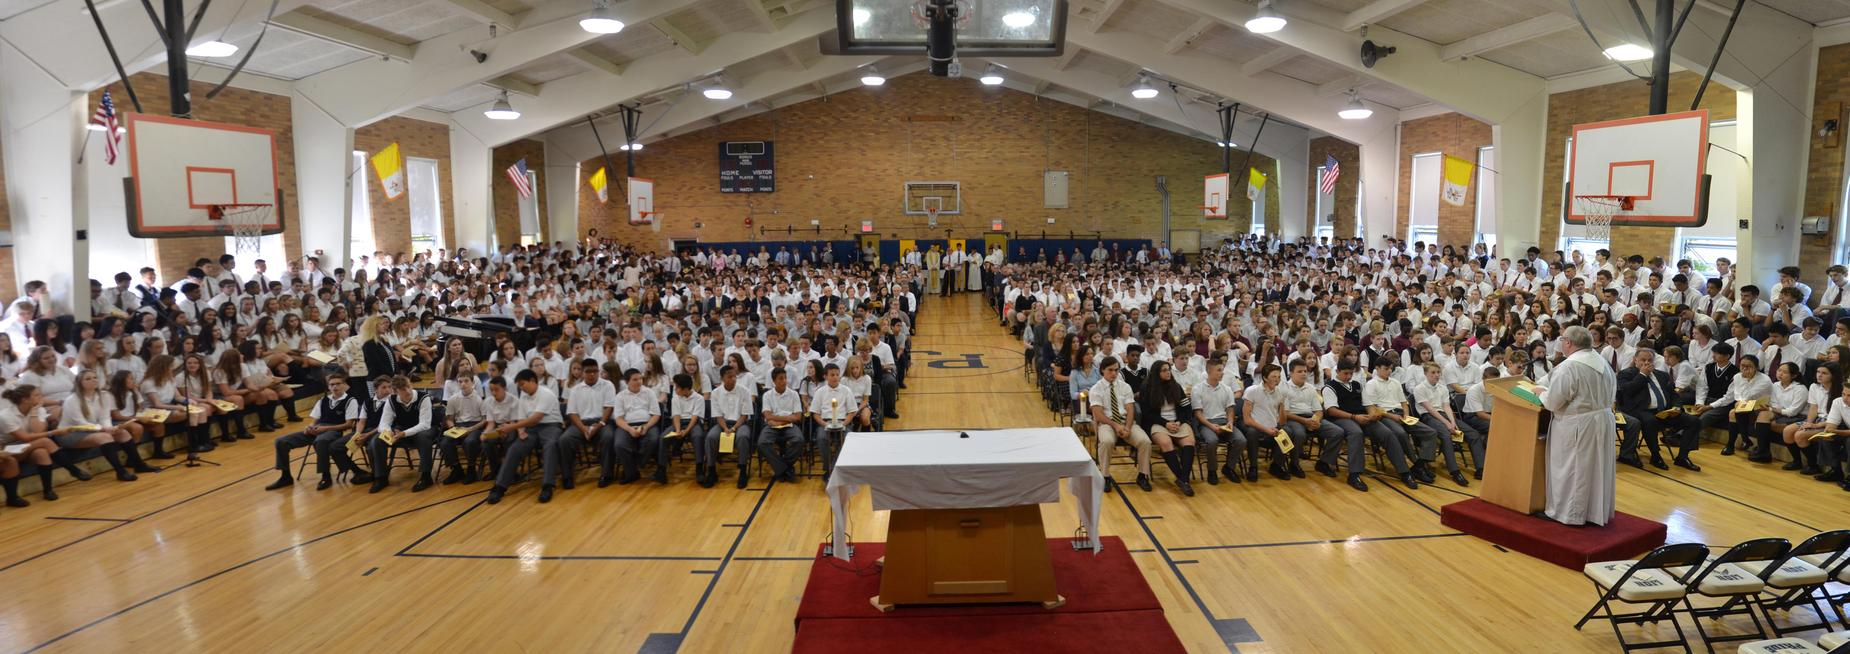 Pope John High School mass in gym